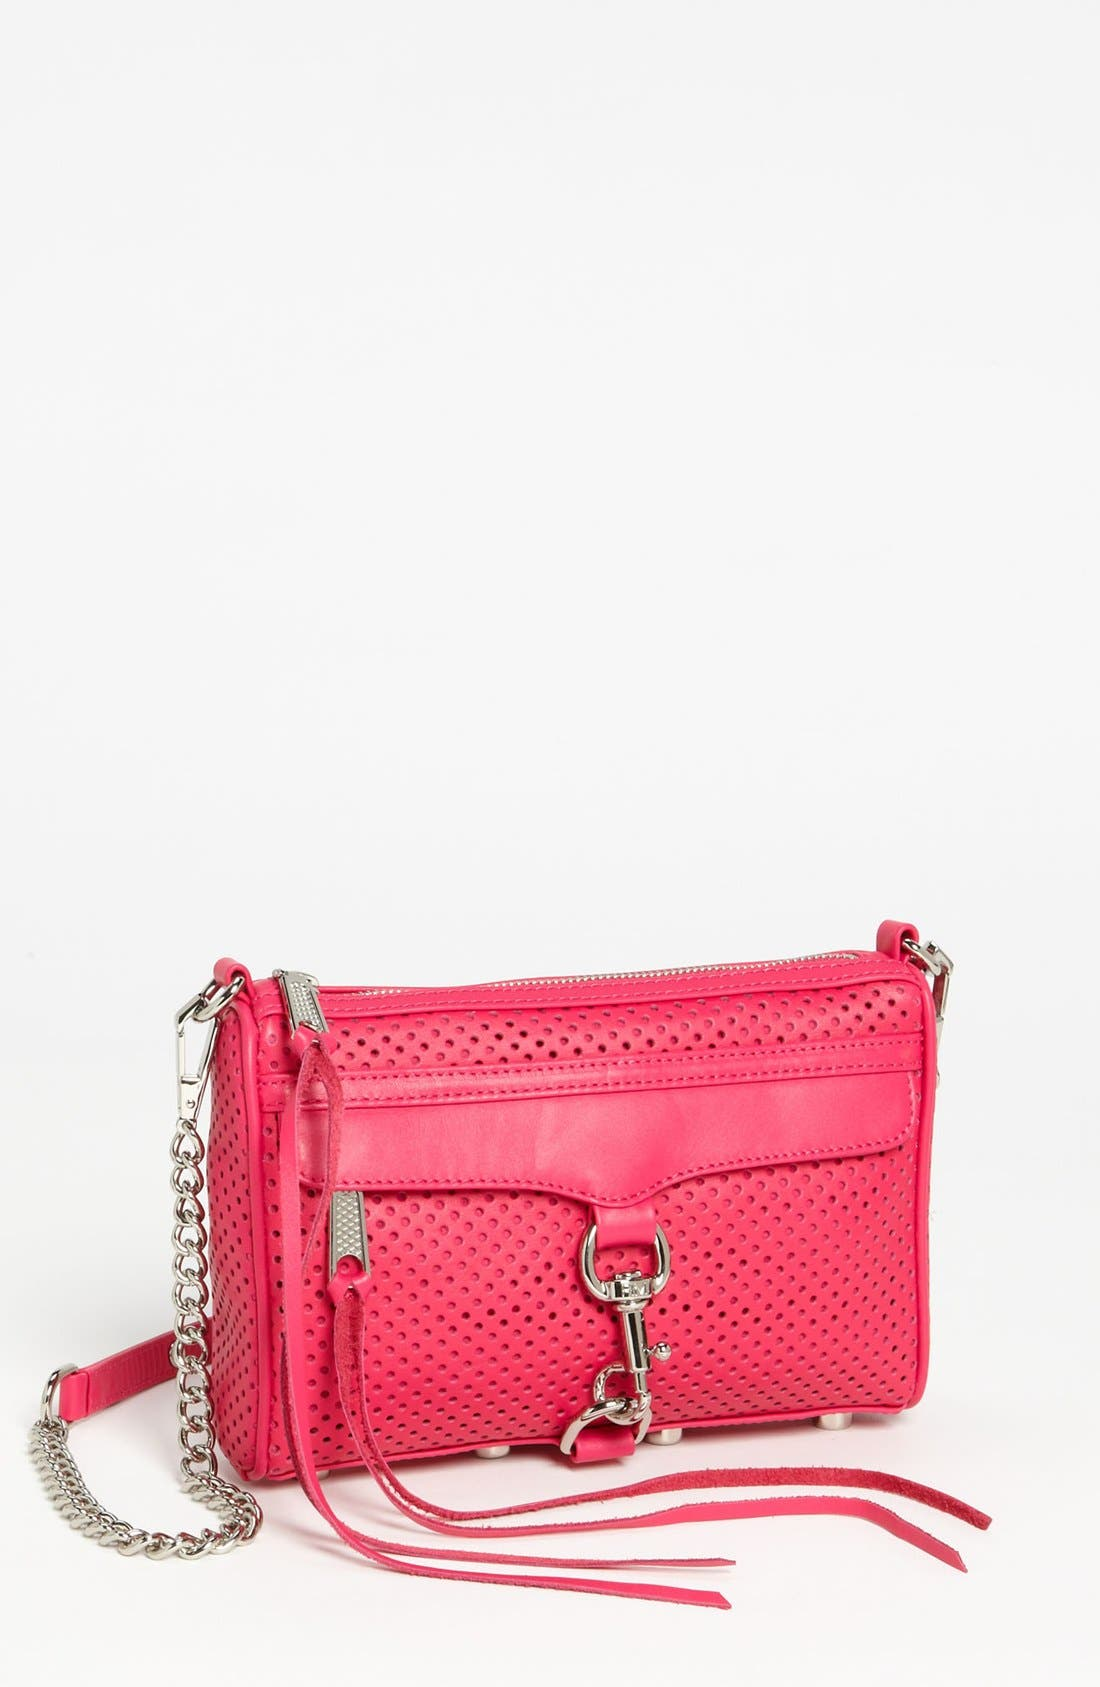 Main Image - Rebecca Minkoff 'Mini MAC' Perforated Leather Clutch